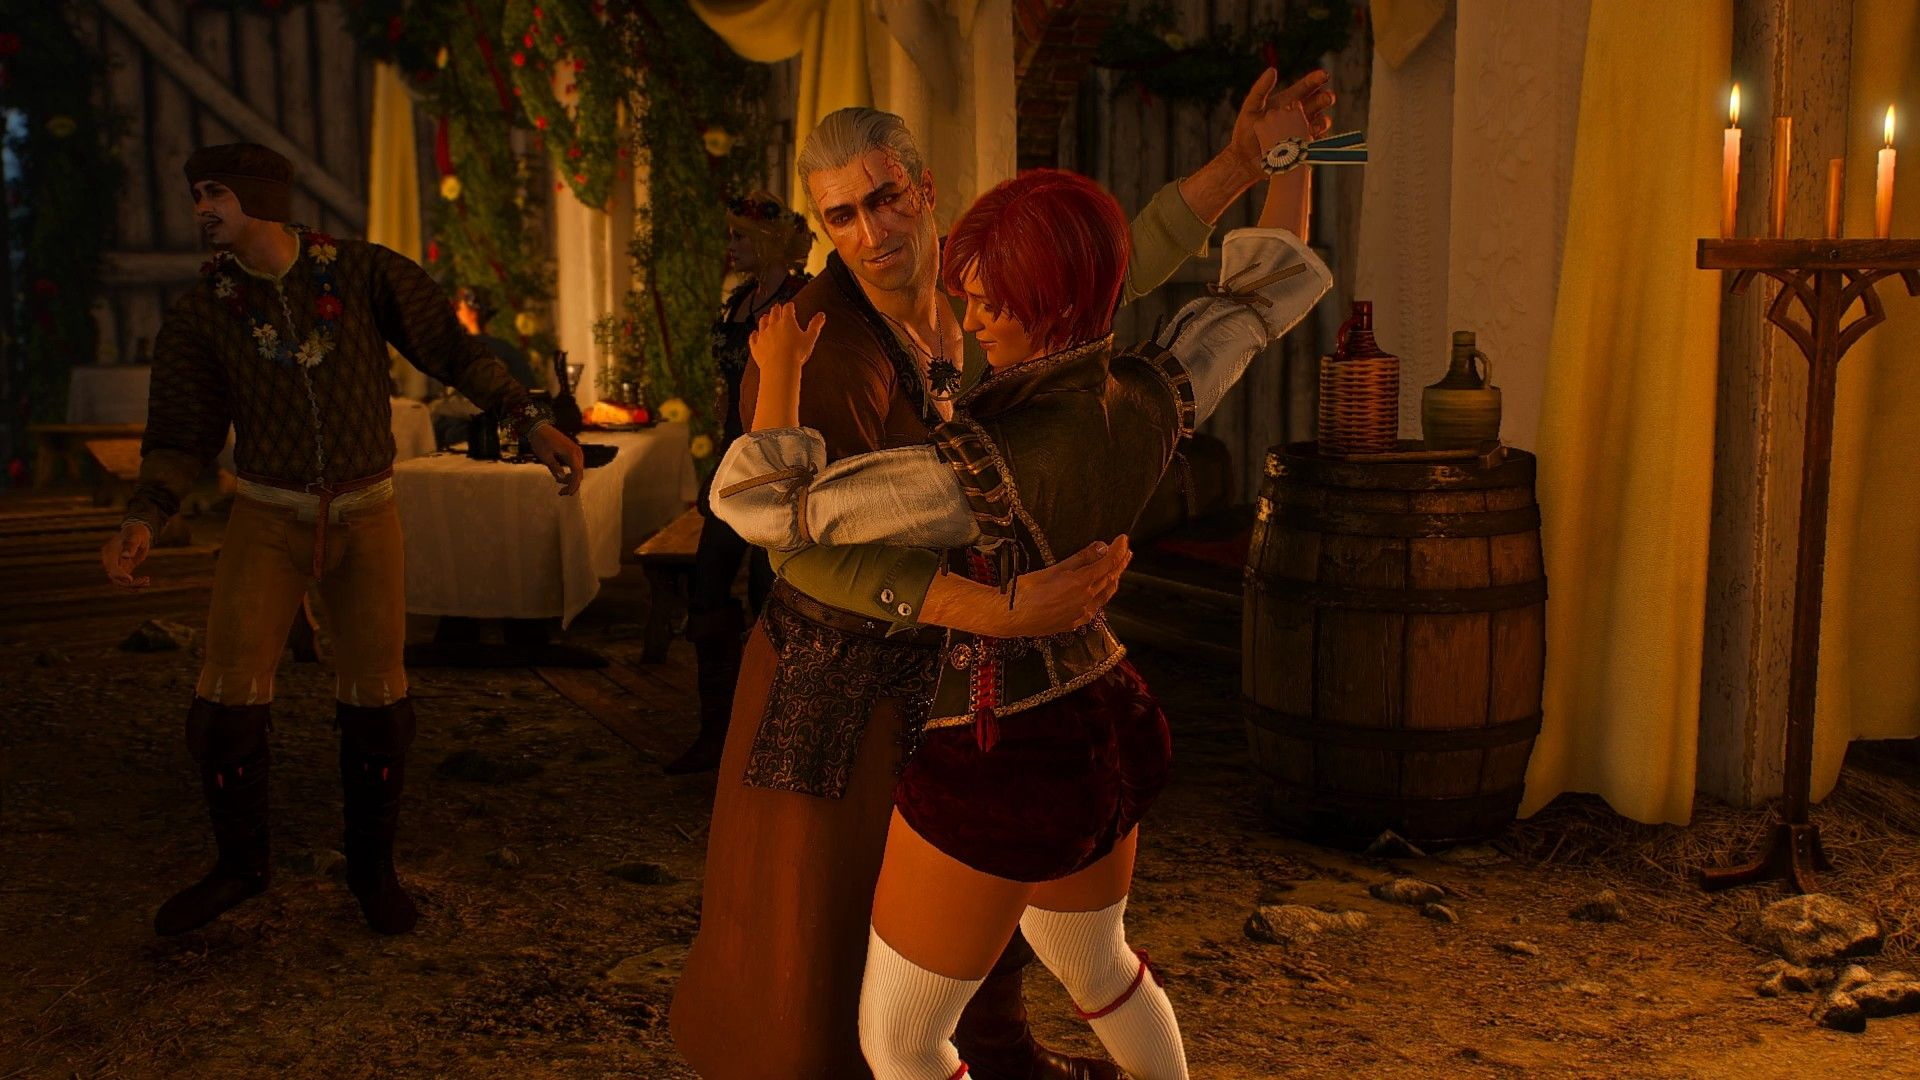 Pin By Genesis On The Witcher 3 Wild Hunt Hearts Of Stone Witcher 3 Wild Hunt The Witcher 3 Wild Hunt